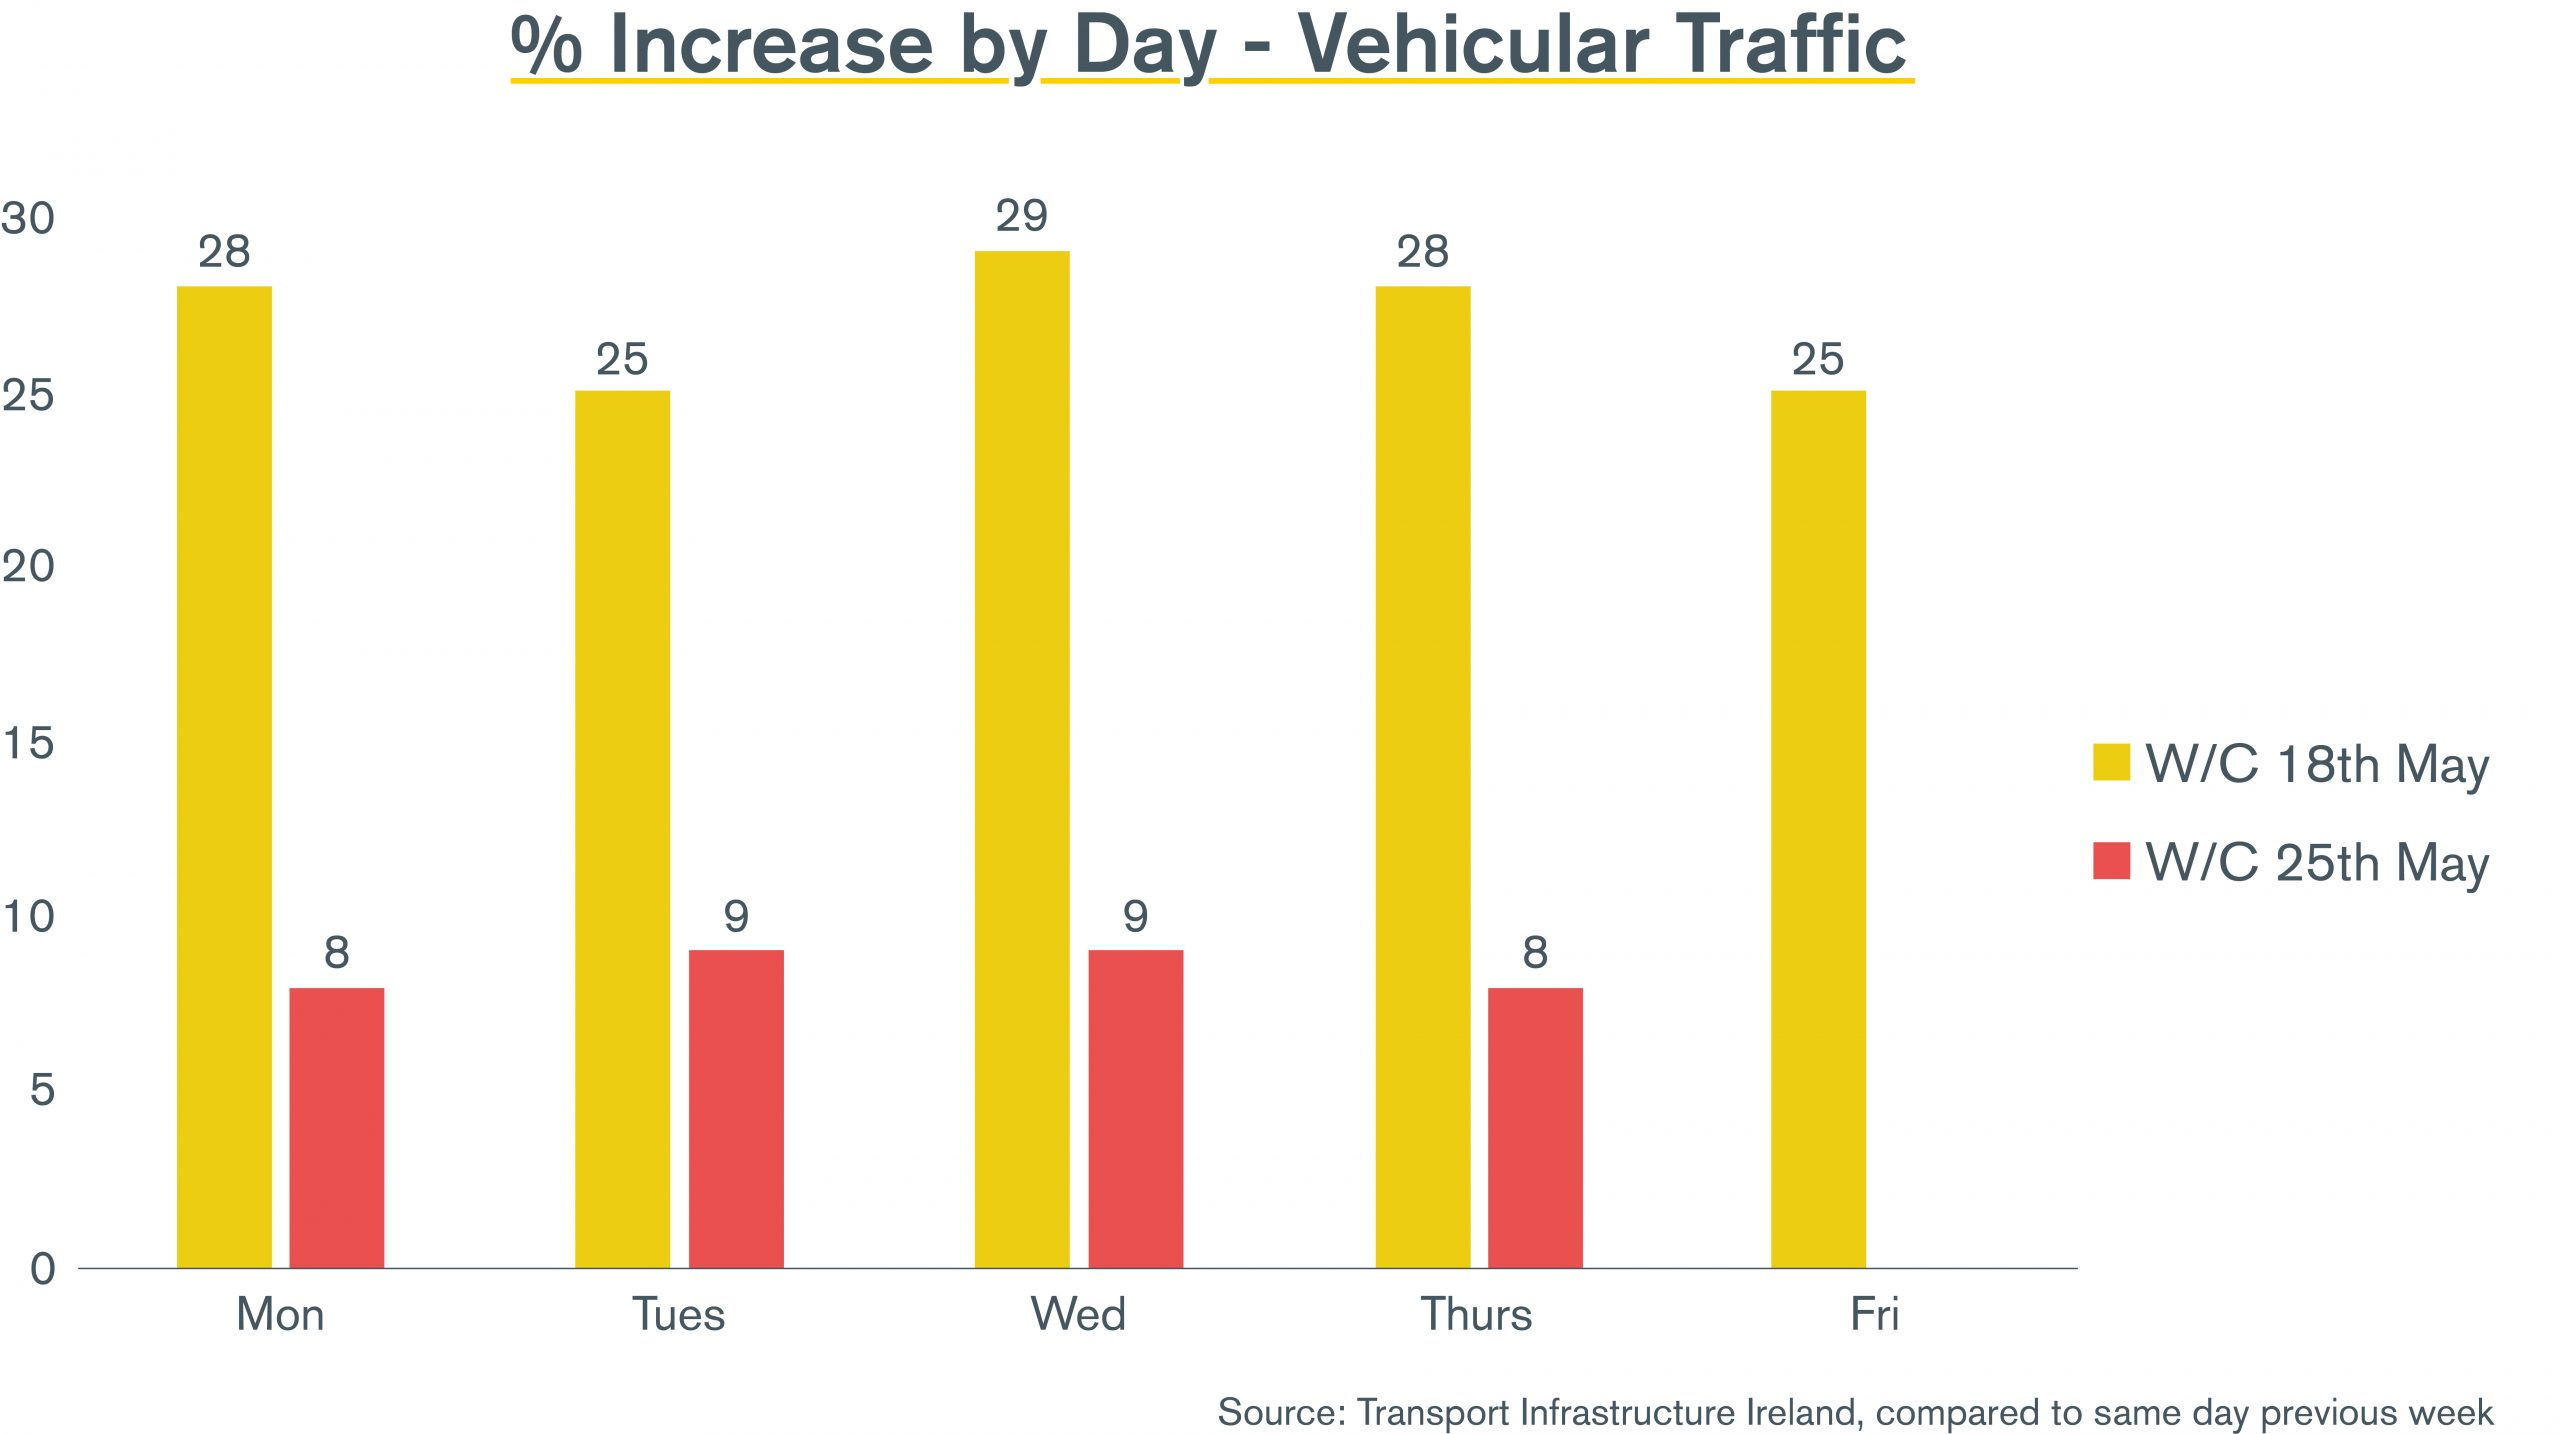 Percentage Increase by Day - Vehicular Traffic chart